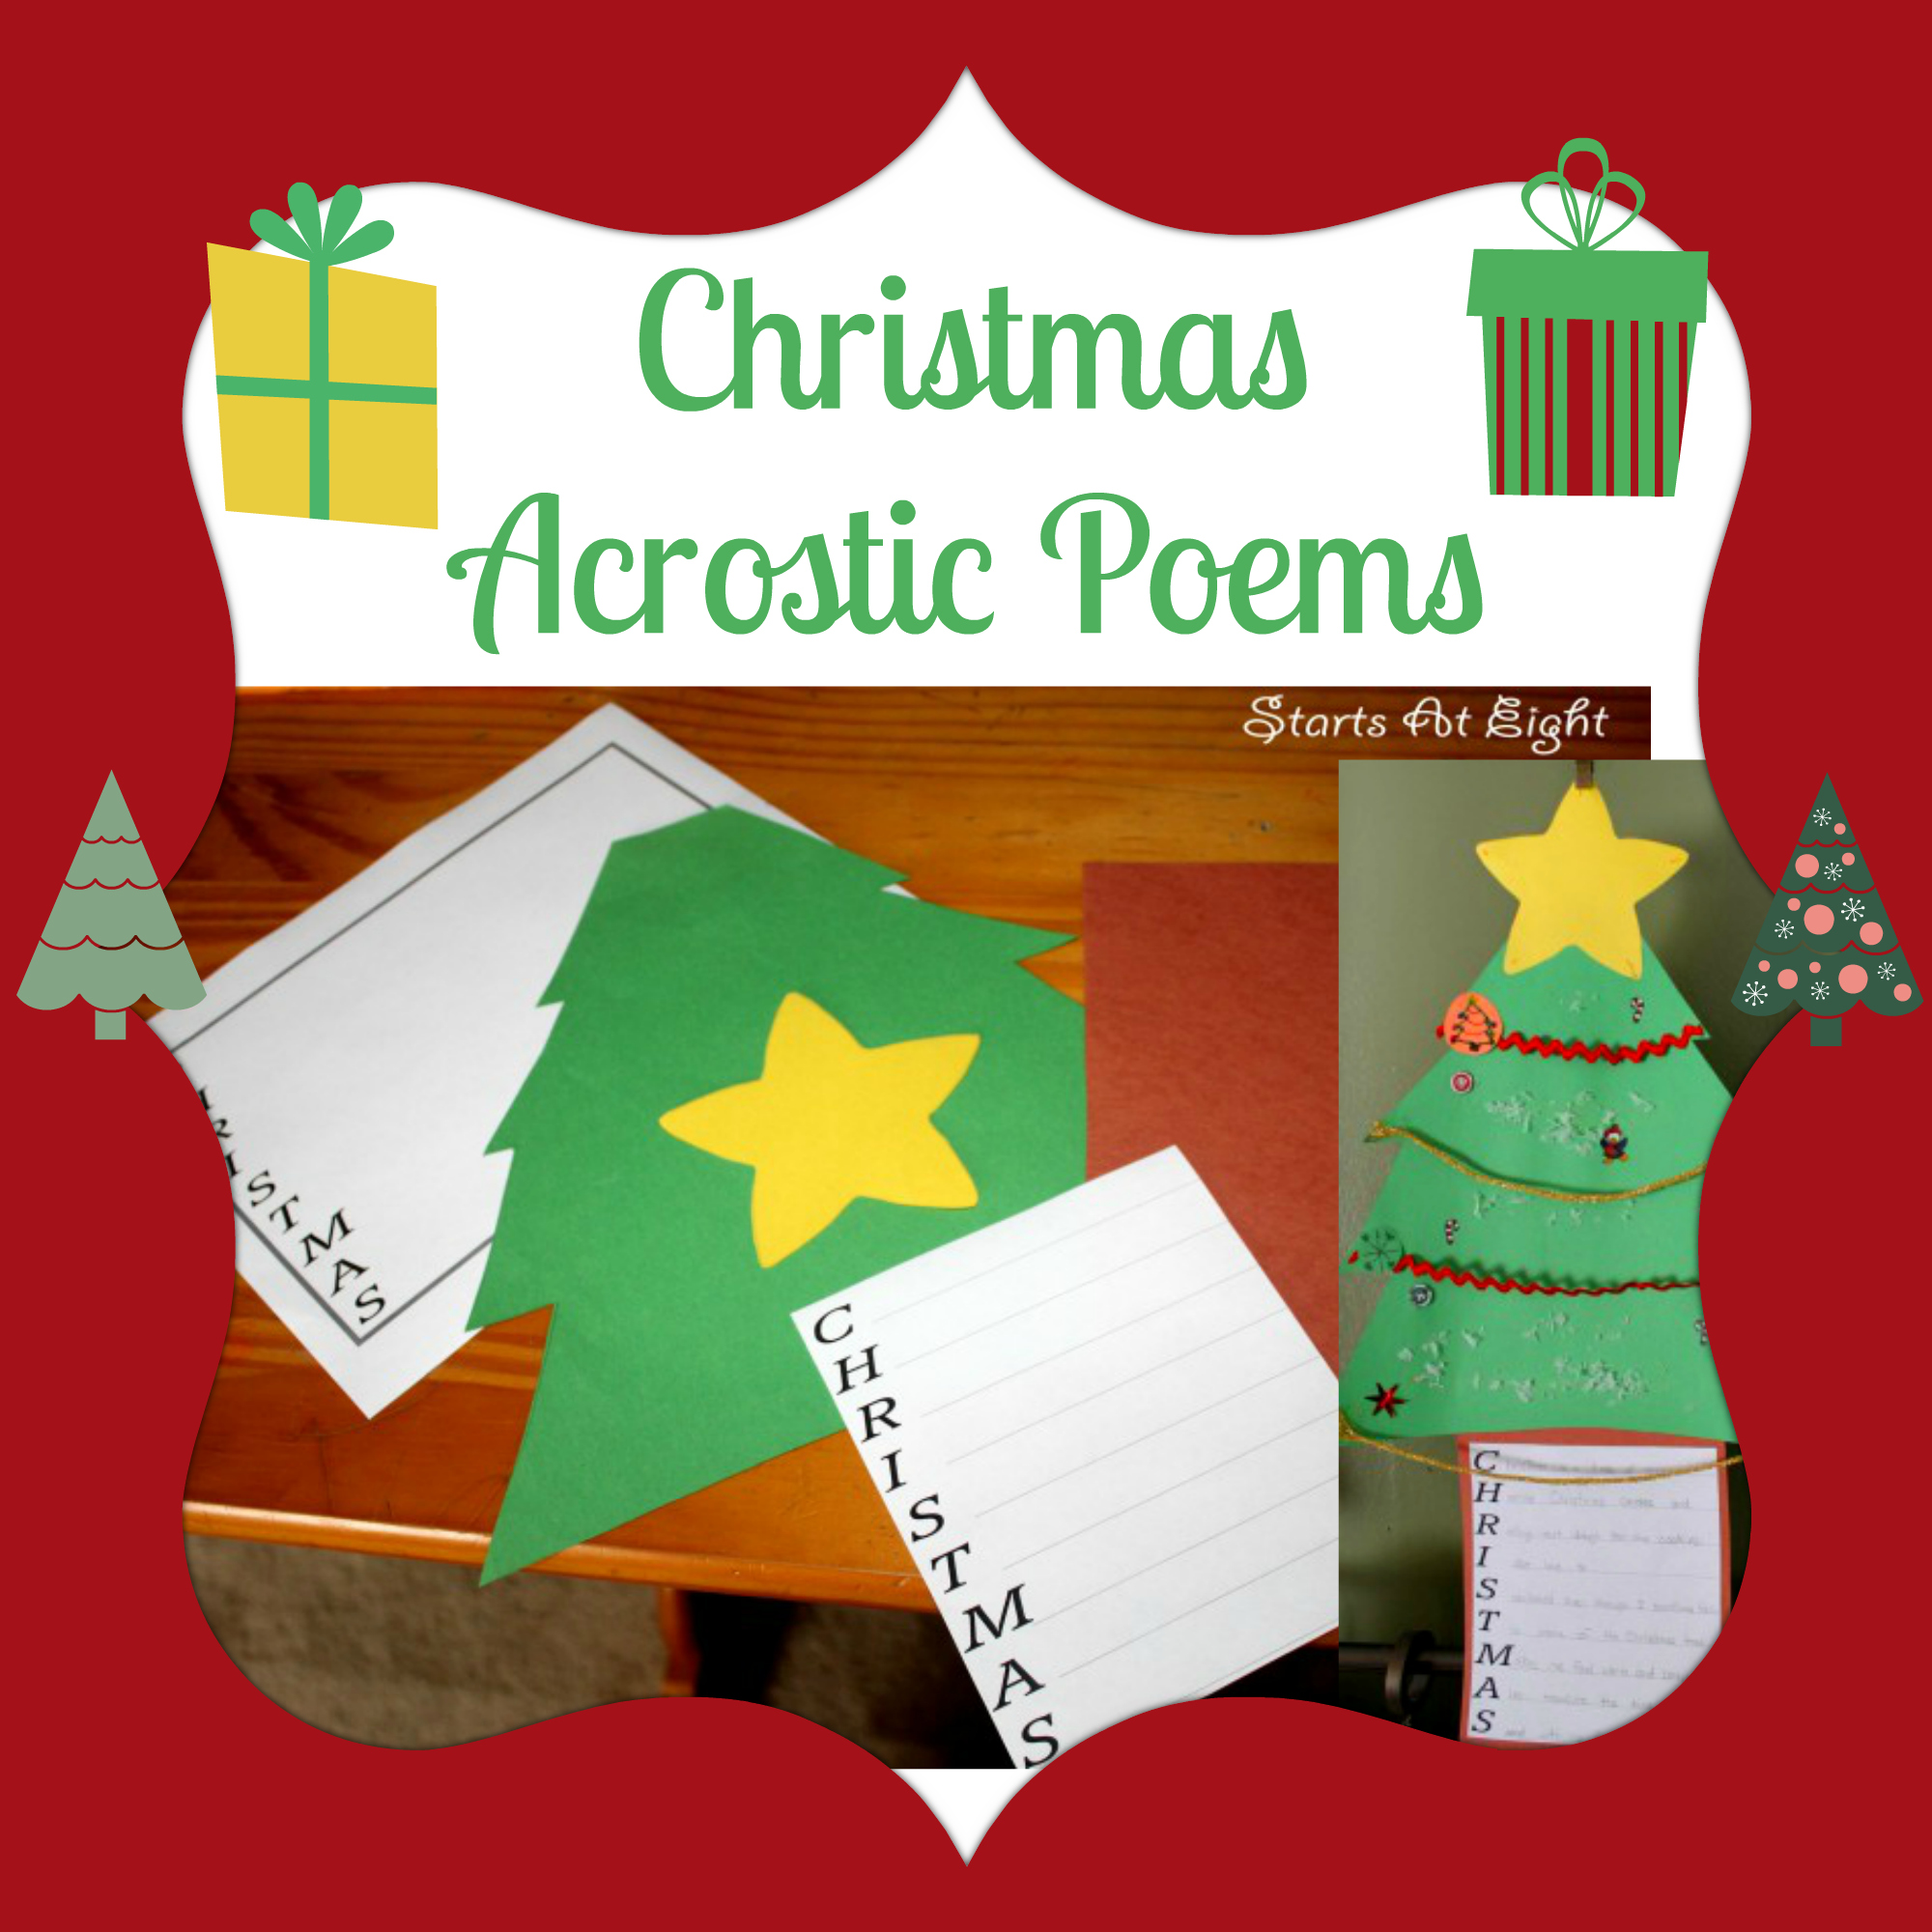 Christmas Acrostic Poems - StartsAtEight